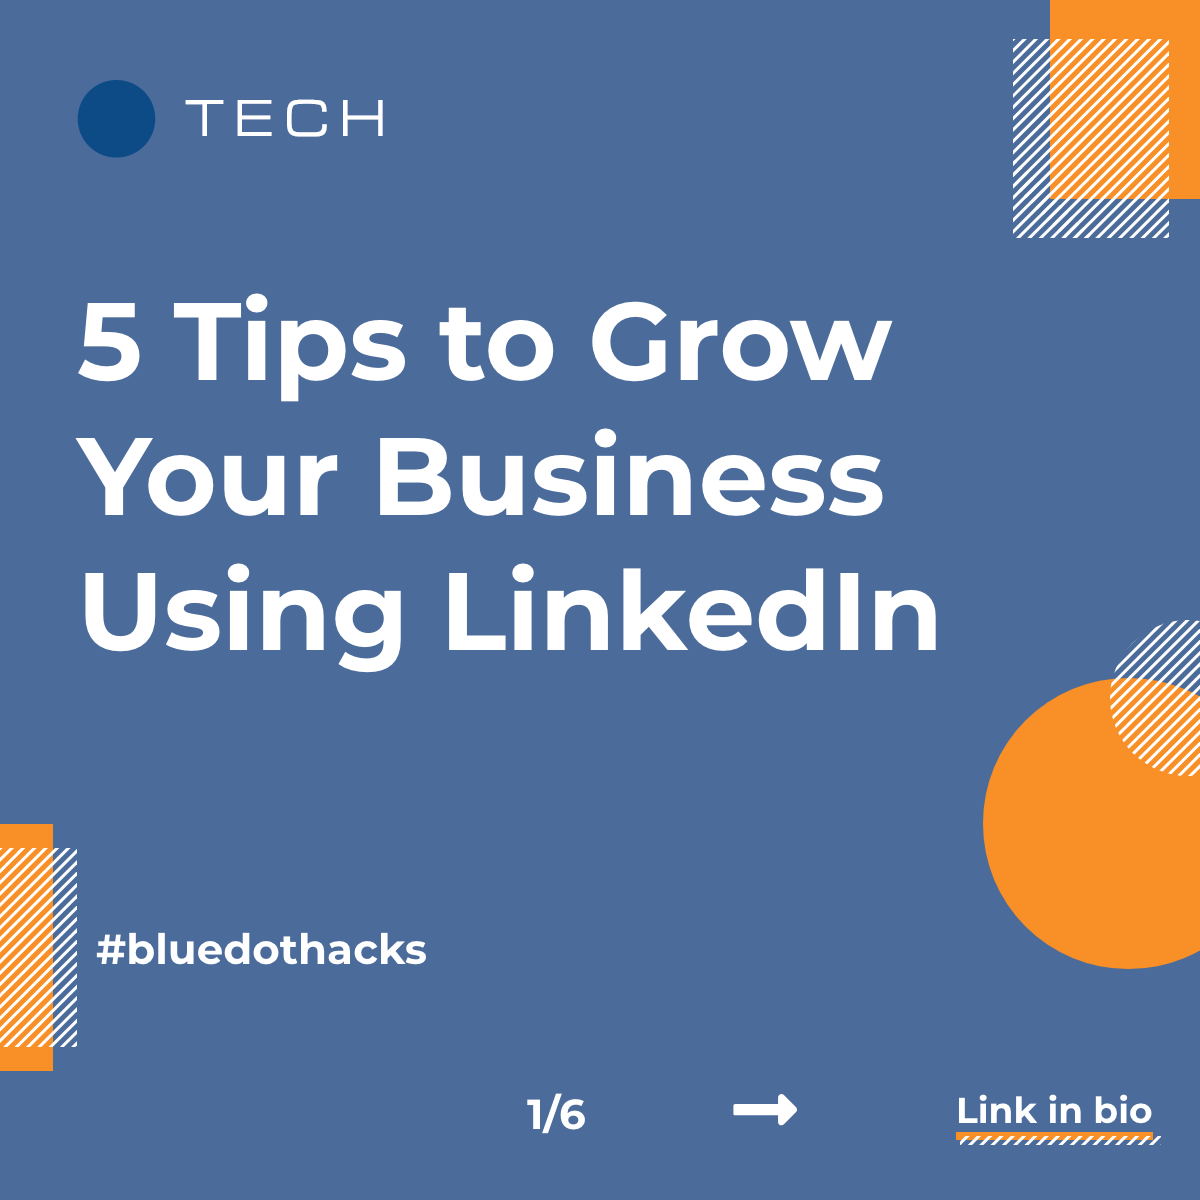 5 Tips to Grow Your Business Using LinkedIn